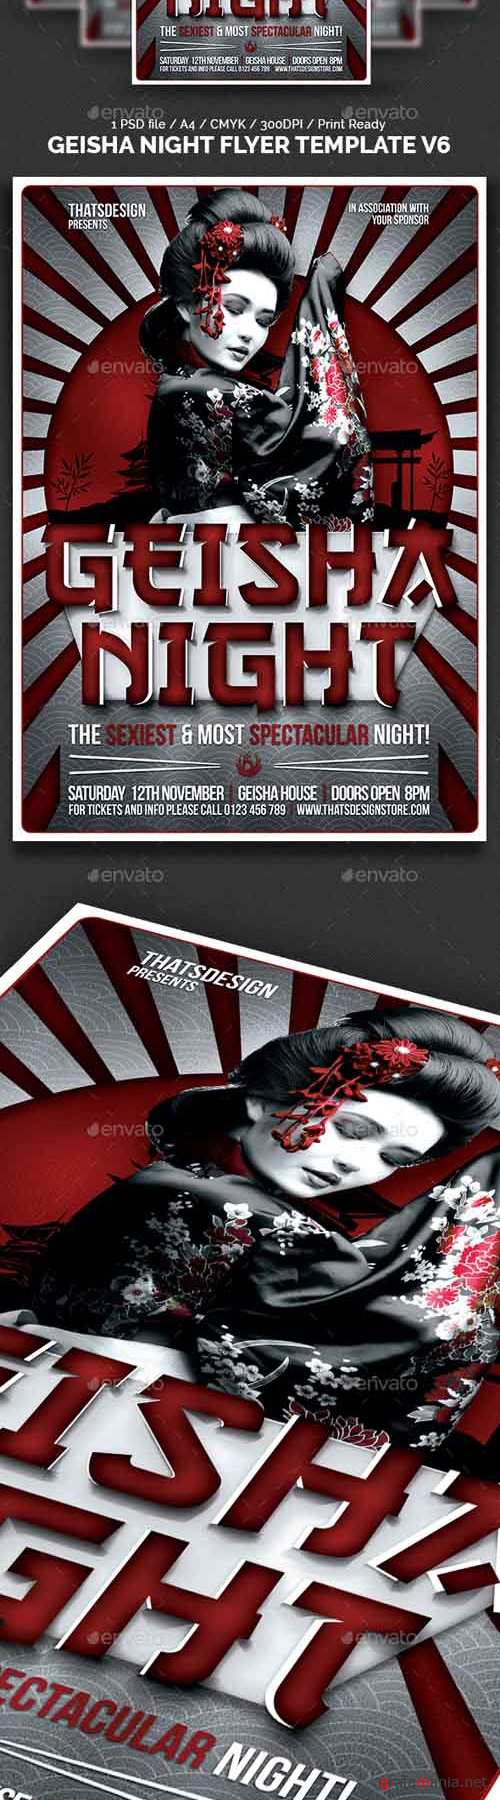 Geisha Night Flyer Template V6 18396035